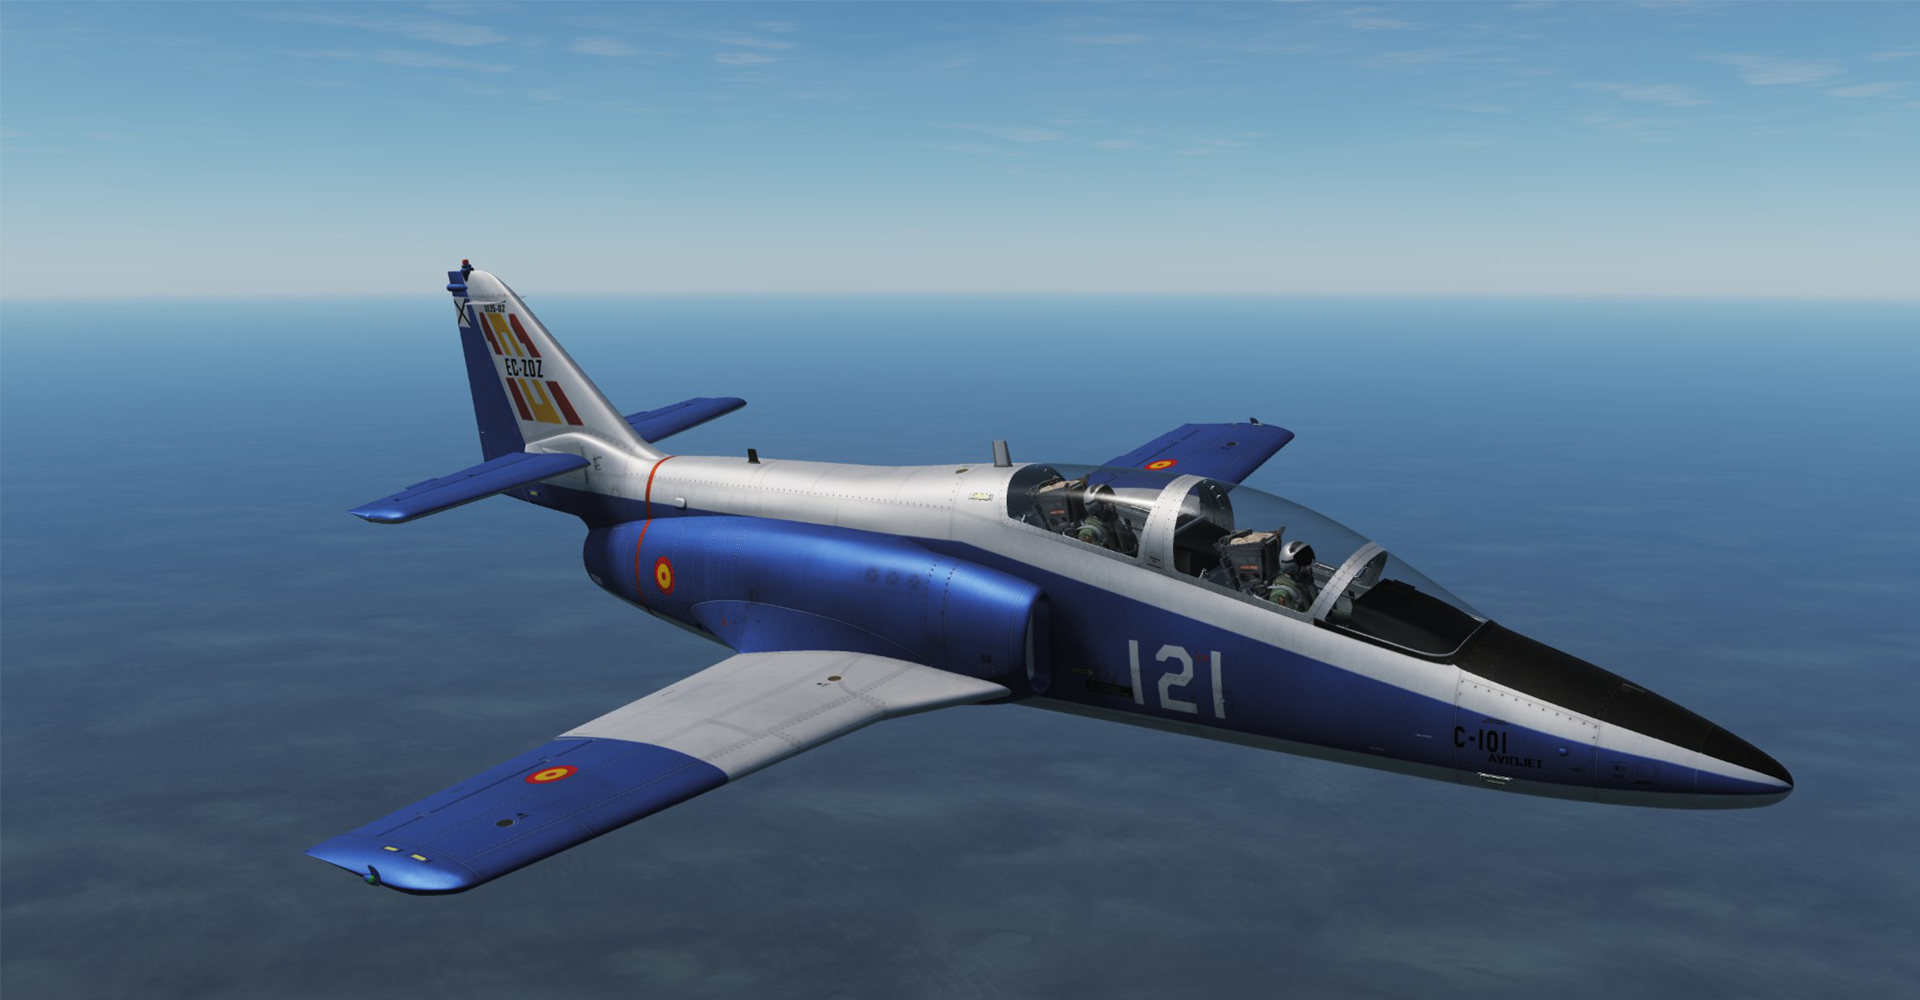 [DEPRECATED] Spanish C-101 XE25-02 Livery (1.1 Update)